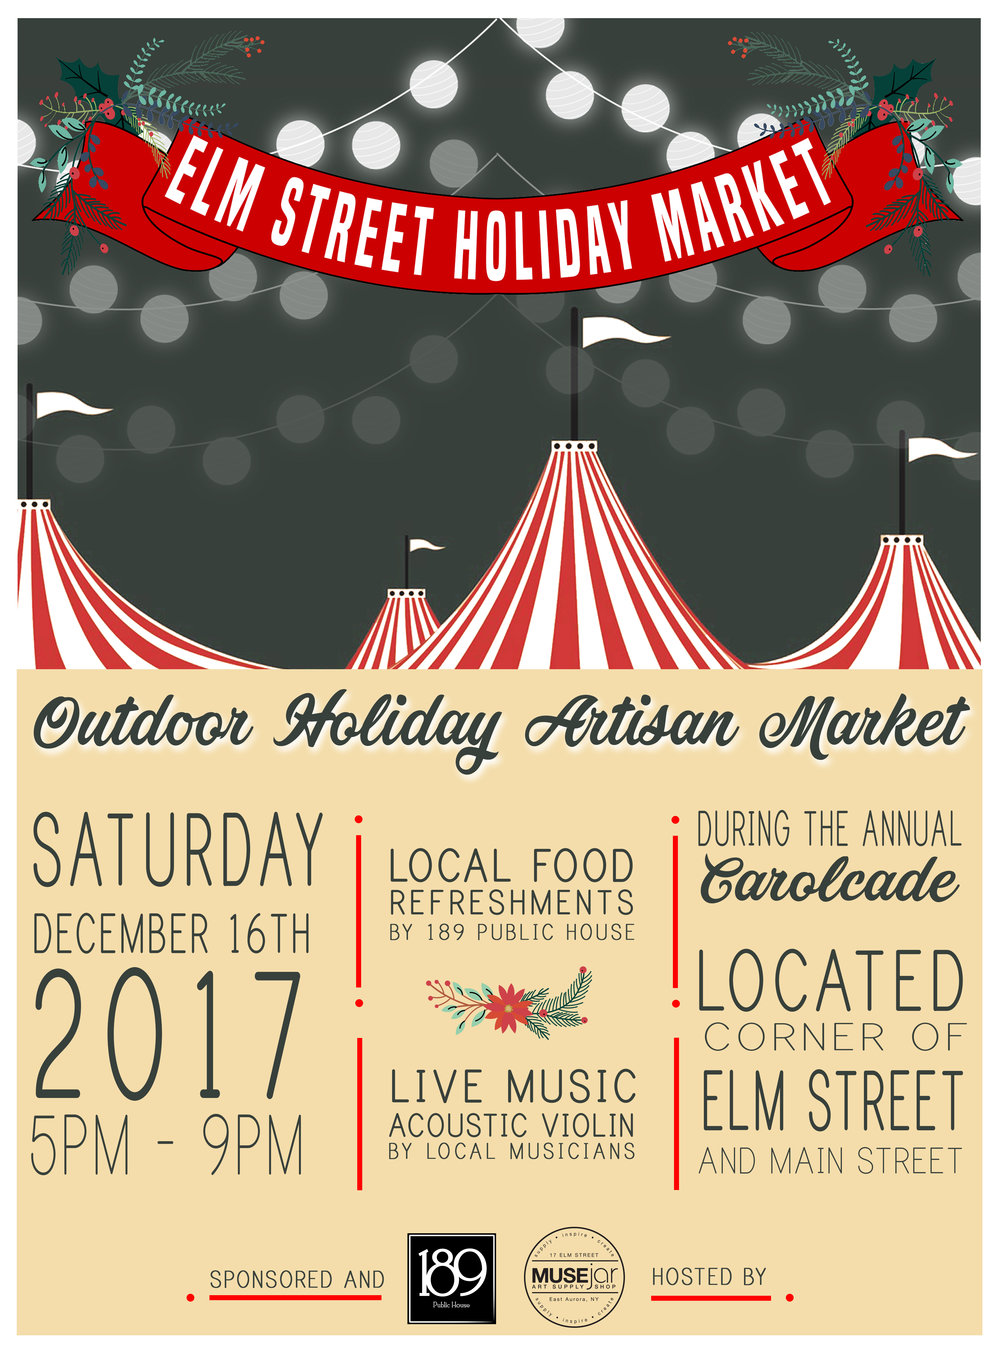 Elm Street Holiday Market 2017 Promo final.jpg